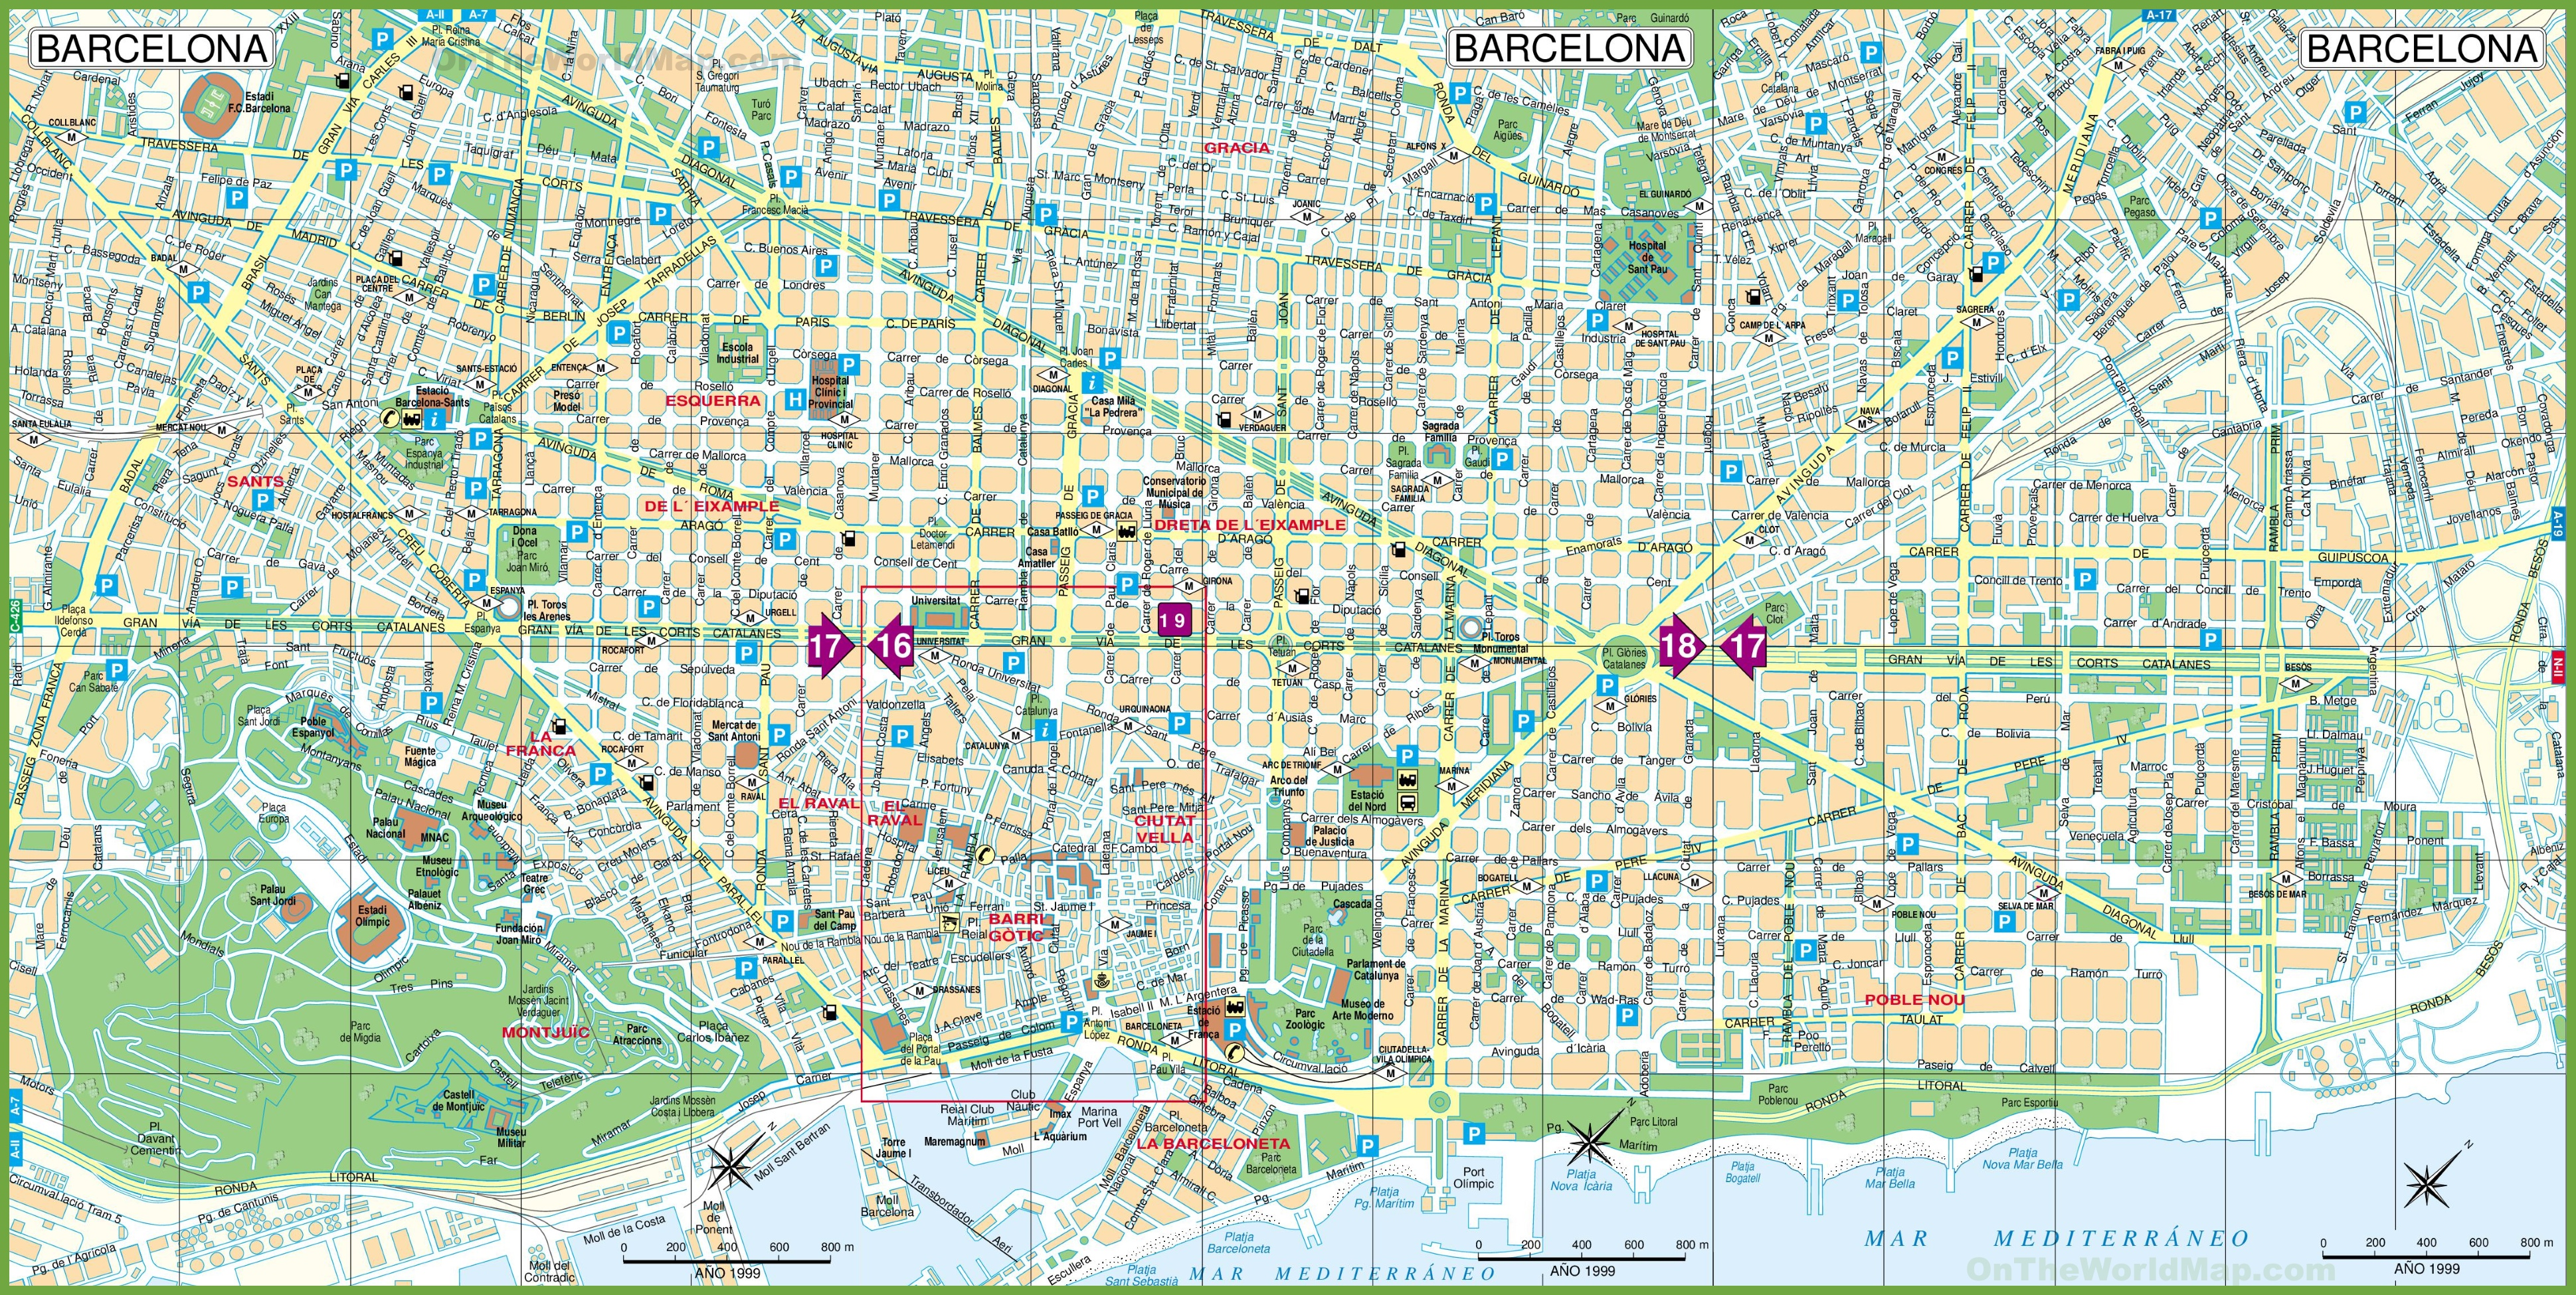 Map Of Spain With Barcelona.Large Detailed Tourist Street Map Of Barcelona